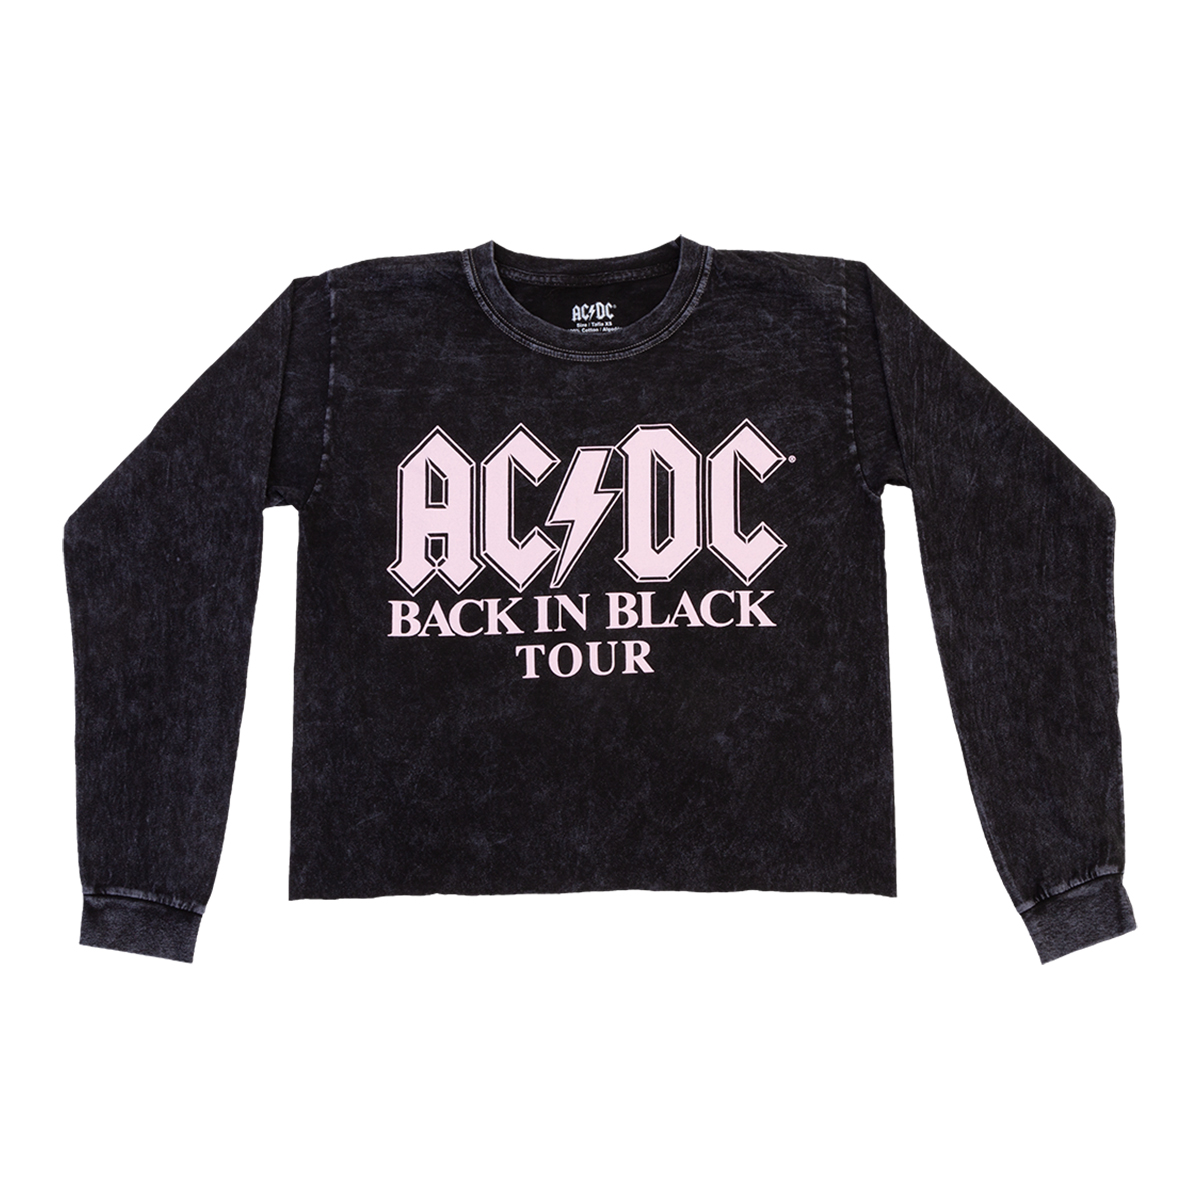 AC/DC Back in Black Longsleeve Crop Top T-shirt